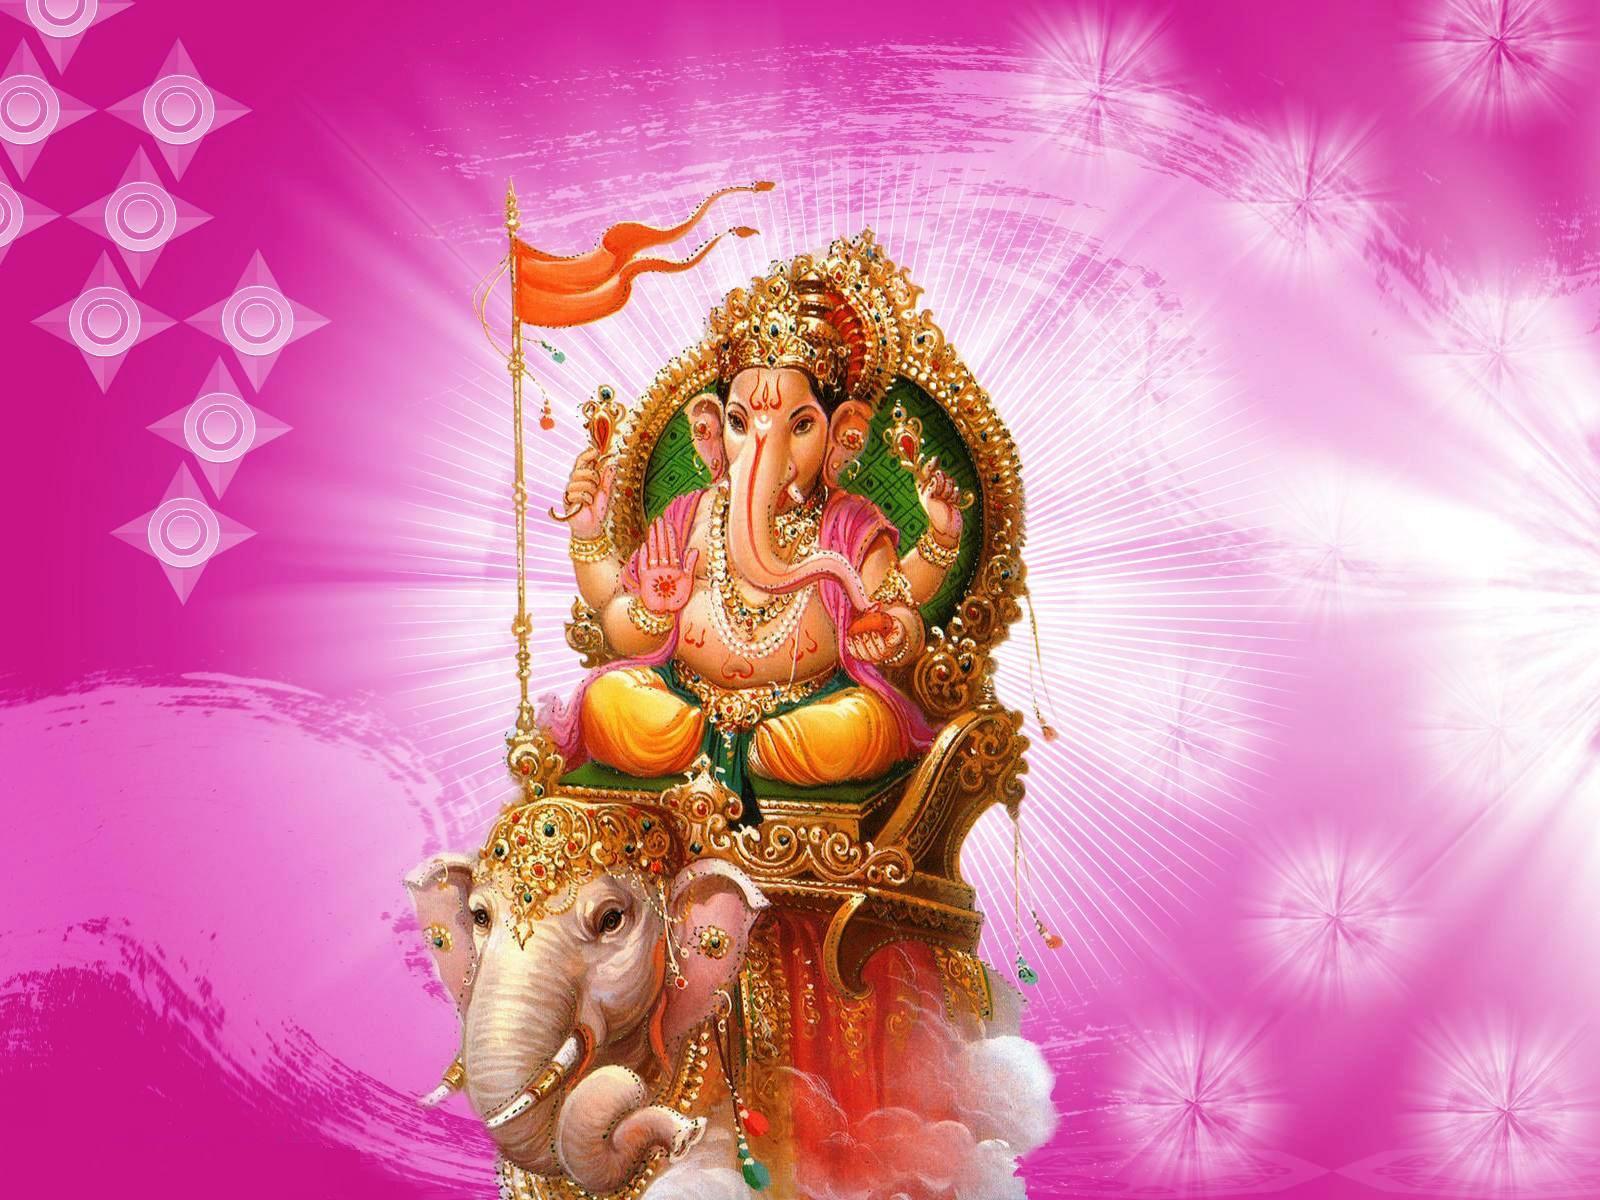 download hq images of lord ganesh ji